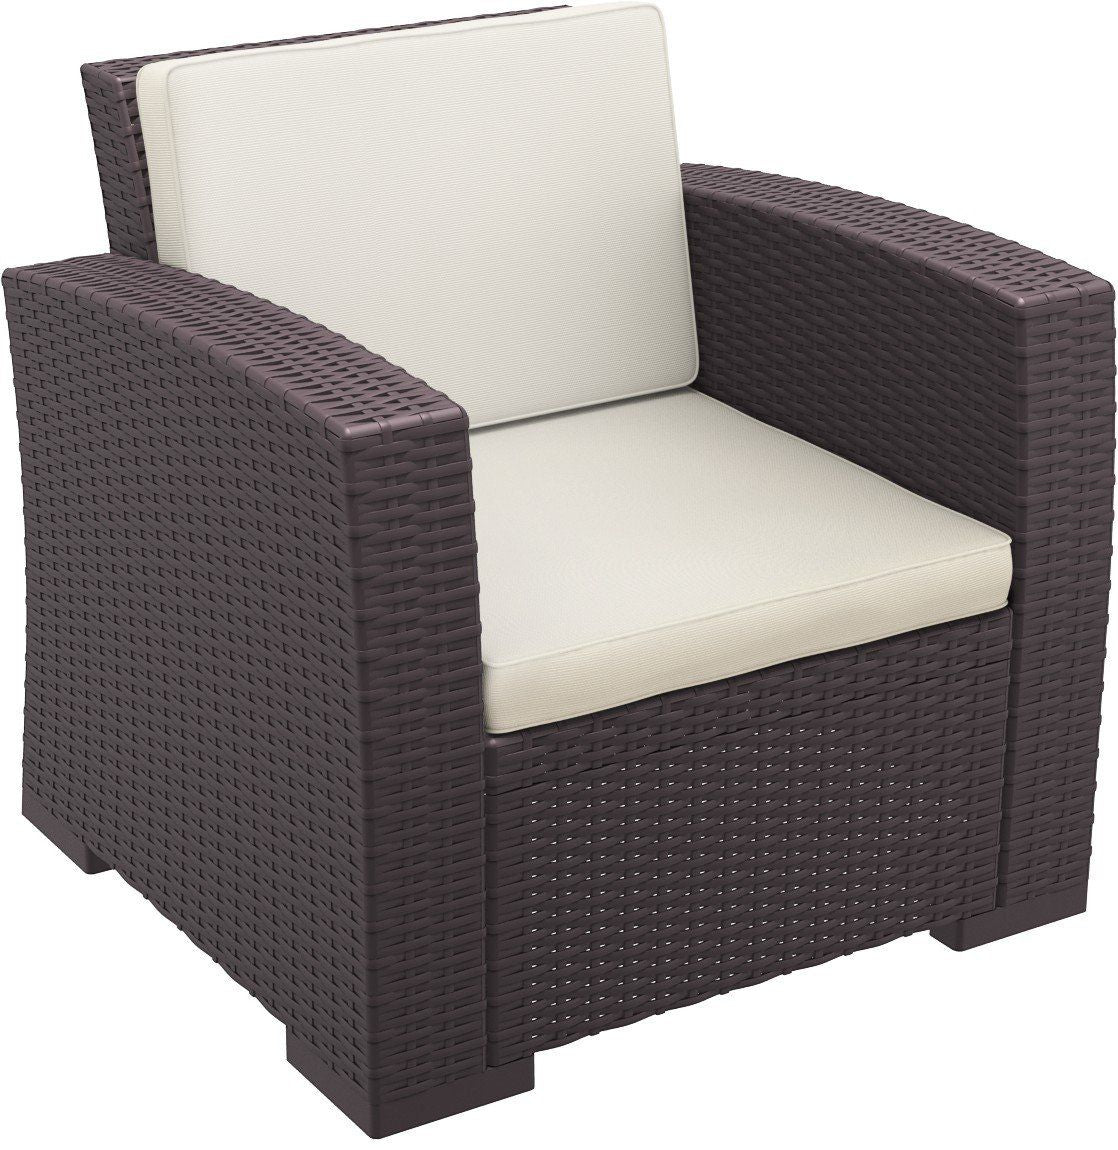 Modern Outdoor And Patio Furniture At Contemporary Furniture Warehouse | Outdoor  Armchairs, Sale